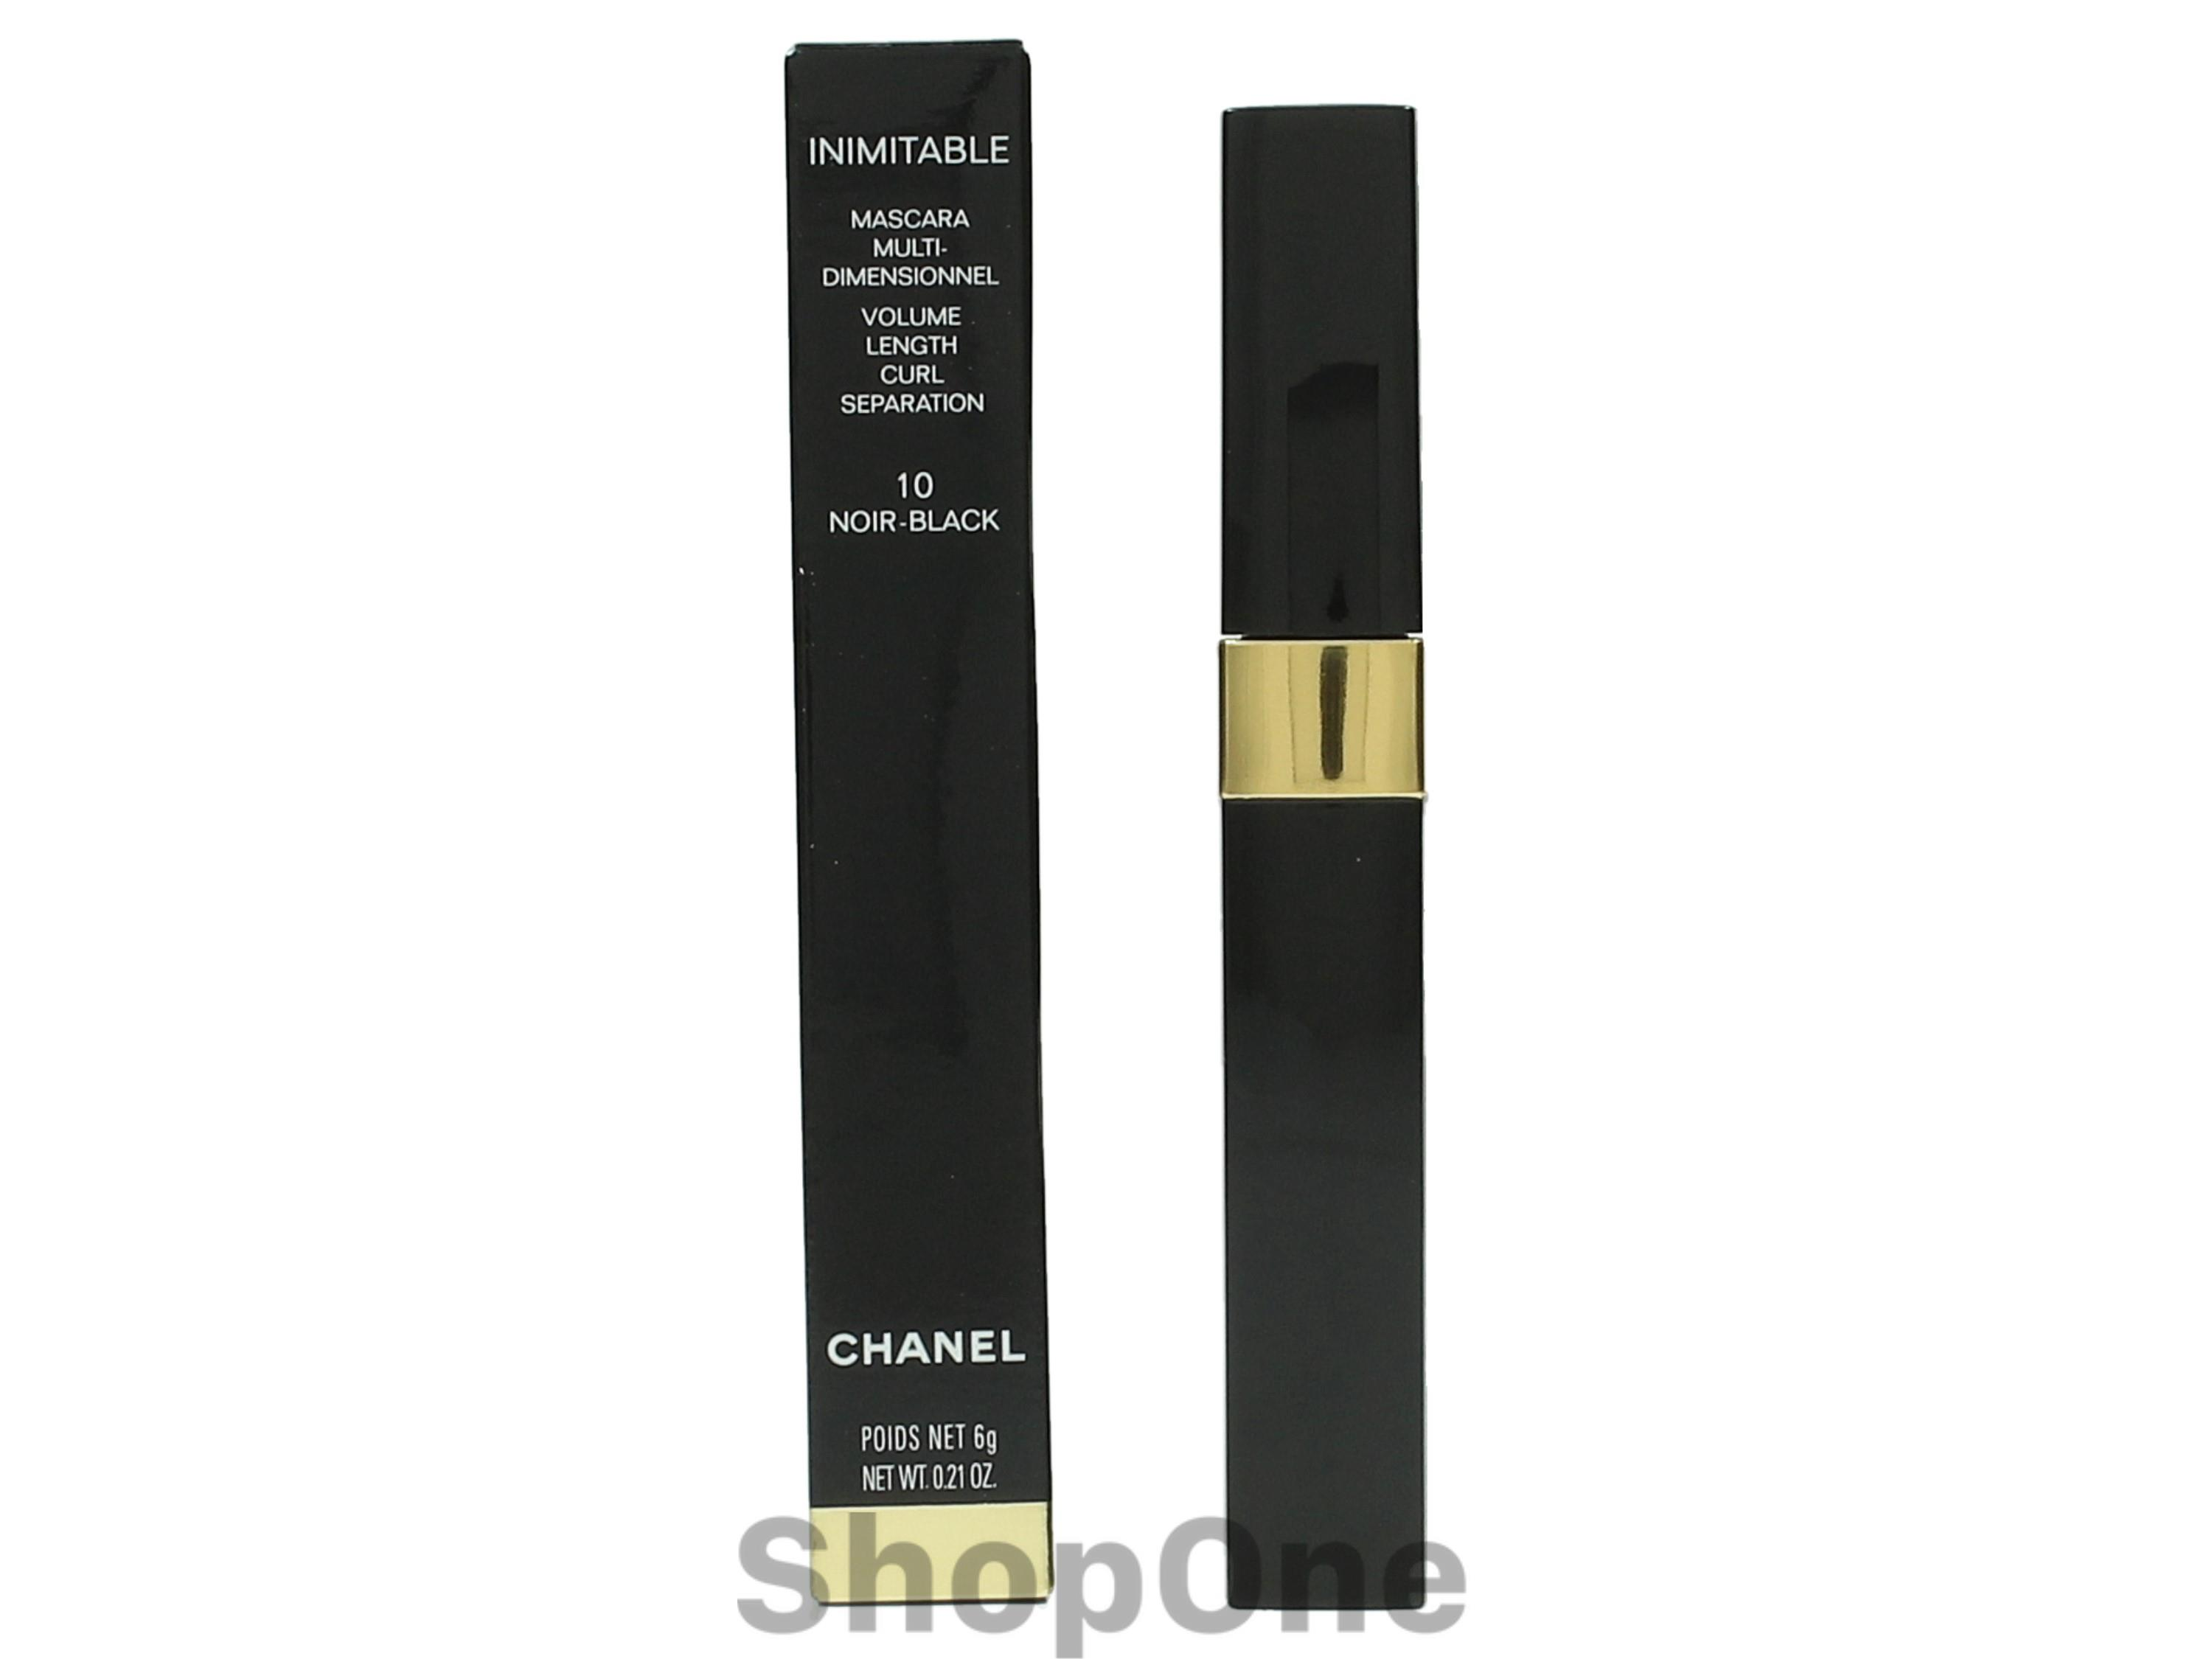 Image of   Inimitable Mascara Multi-Dimensionnel 6 gr fra Chanel